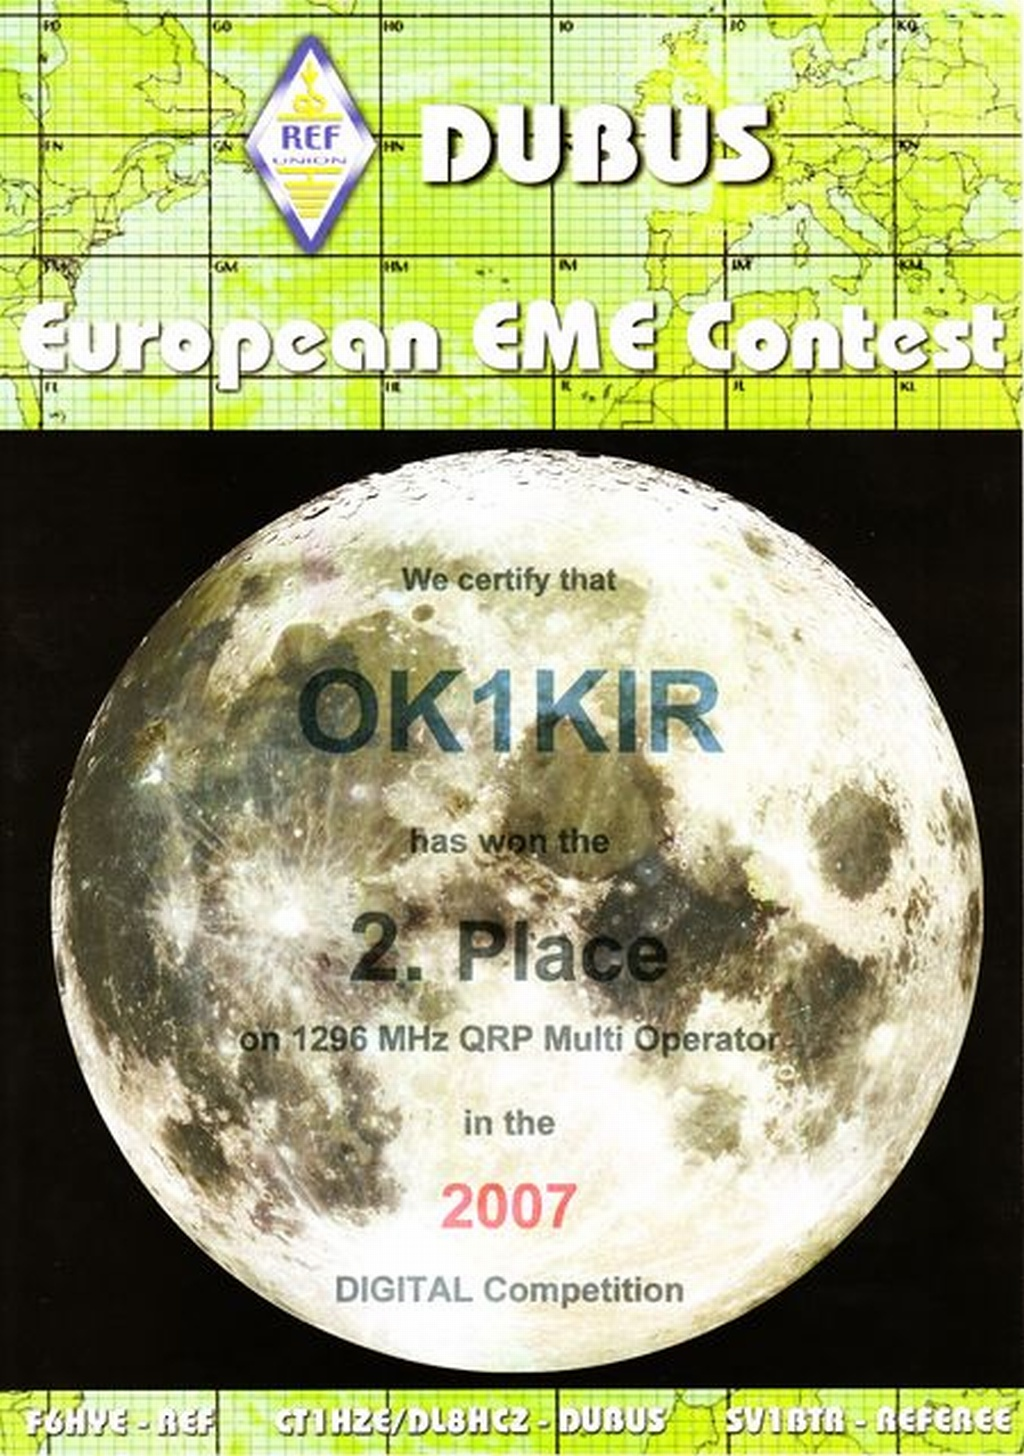 2007 1.3 GHz European EME Contest - Digital Mode